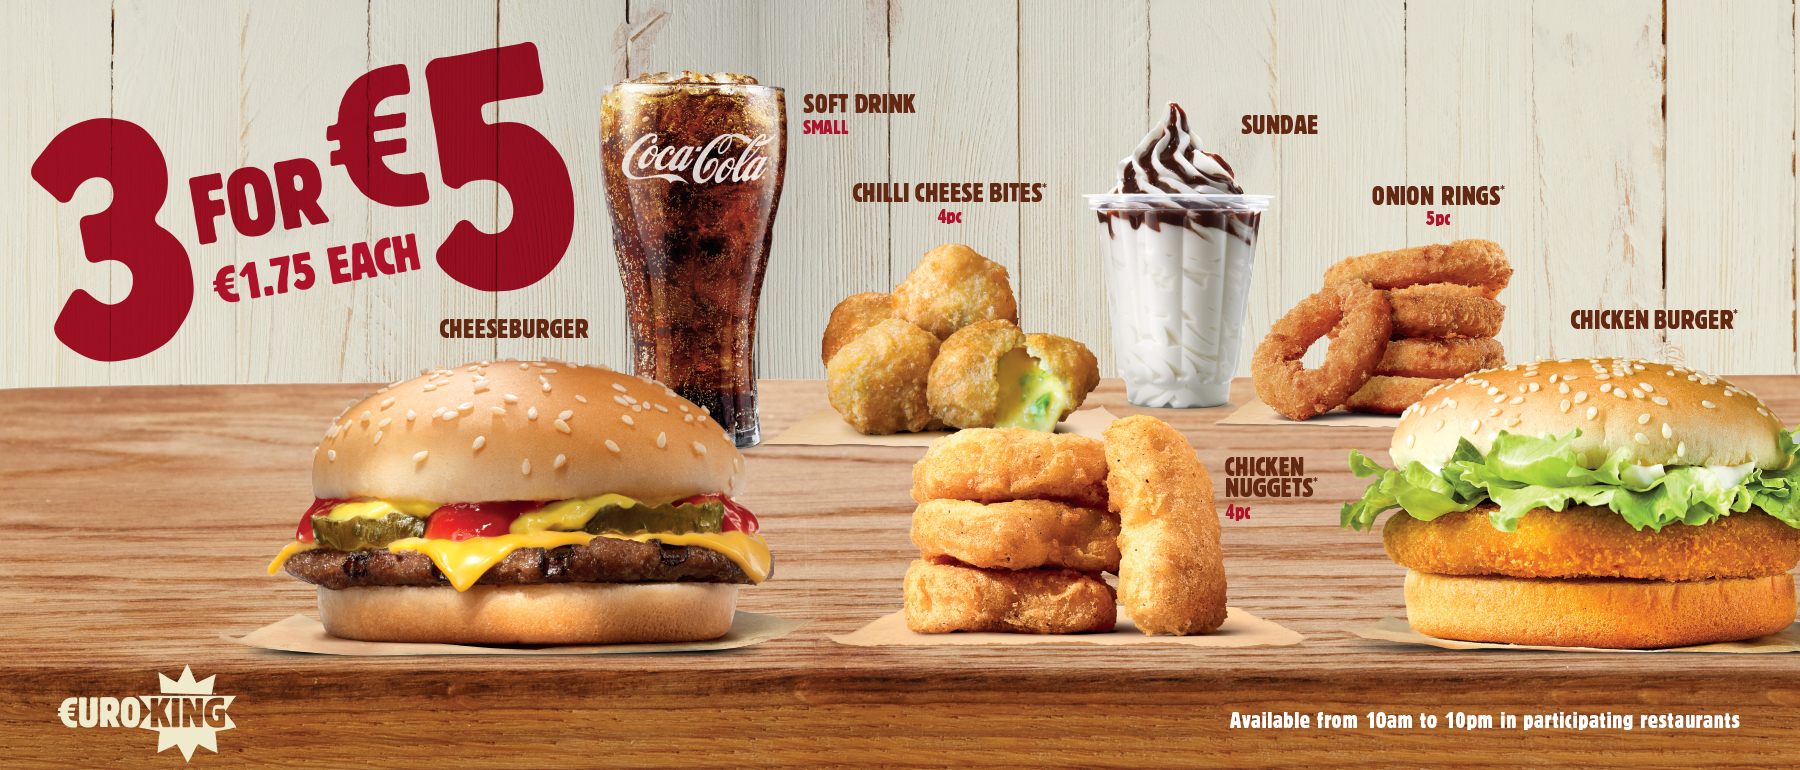 product life cycle of burger king Product life cycle competition target market burger king's main competition is between mcdonald's and wendy's because both of these places sell a similar product as burger king.